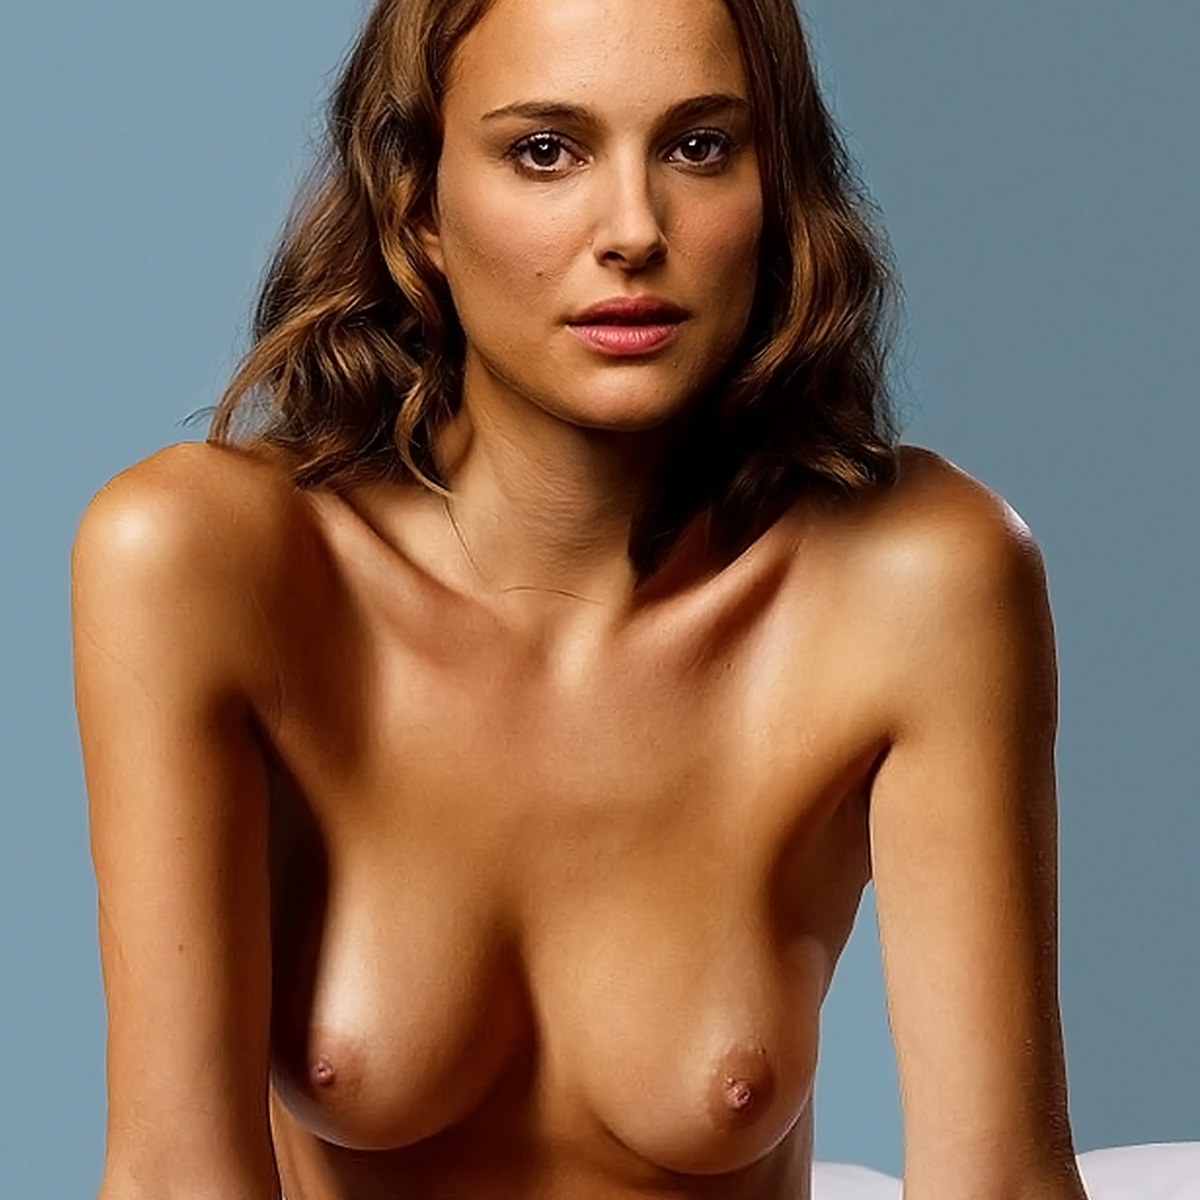 natalie photos nude portman